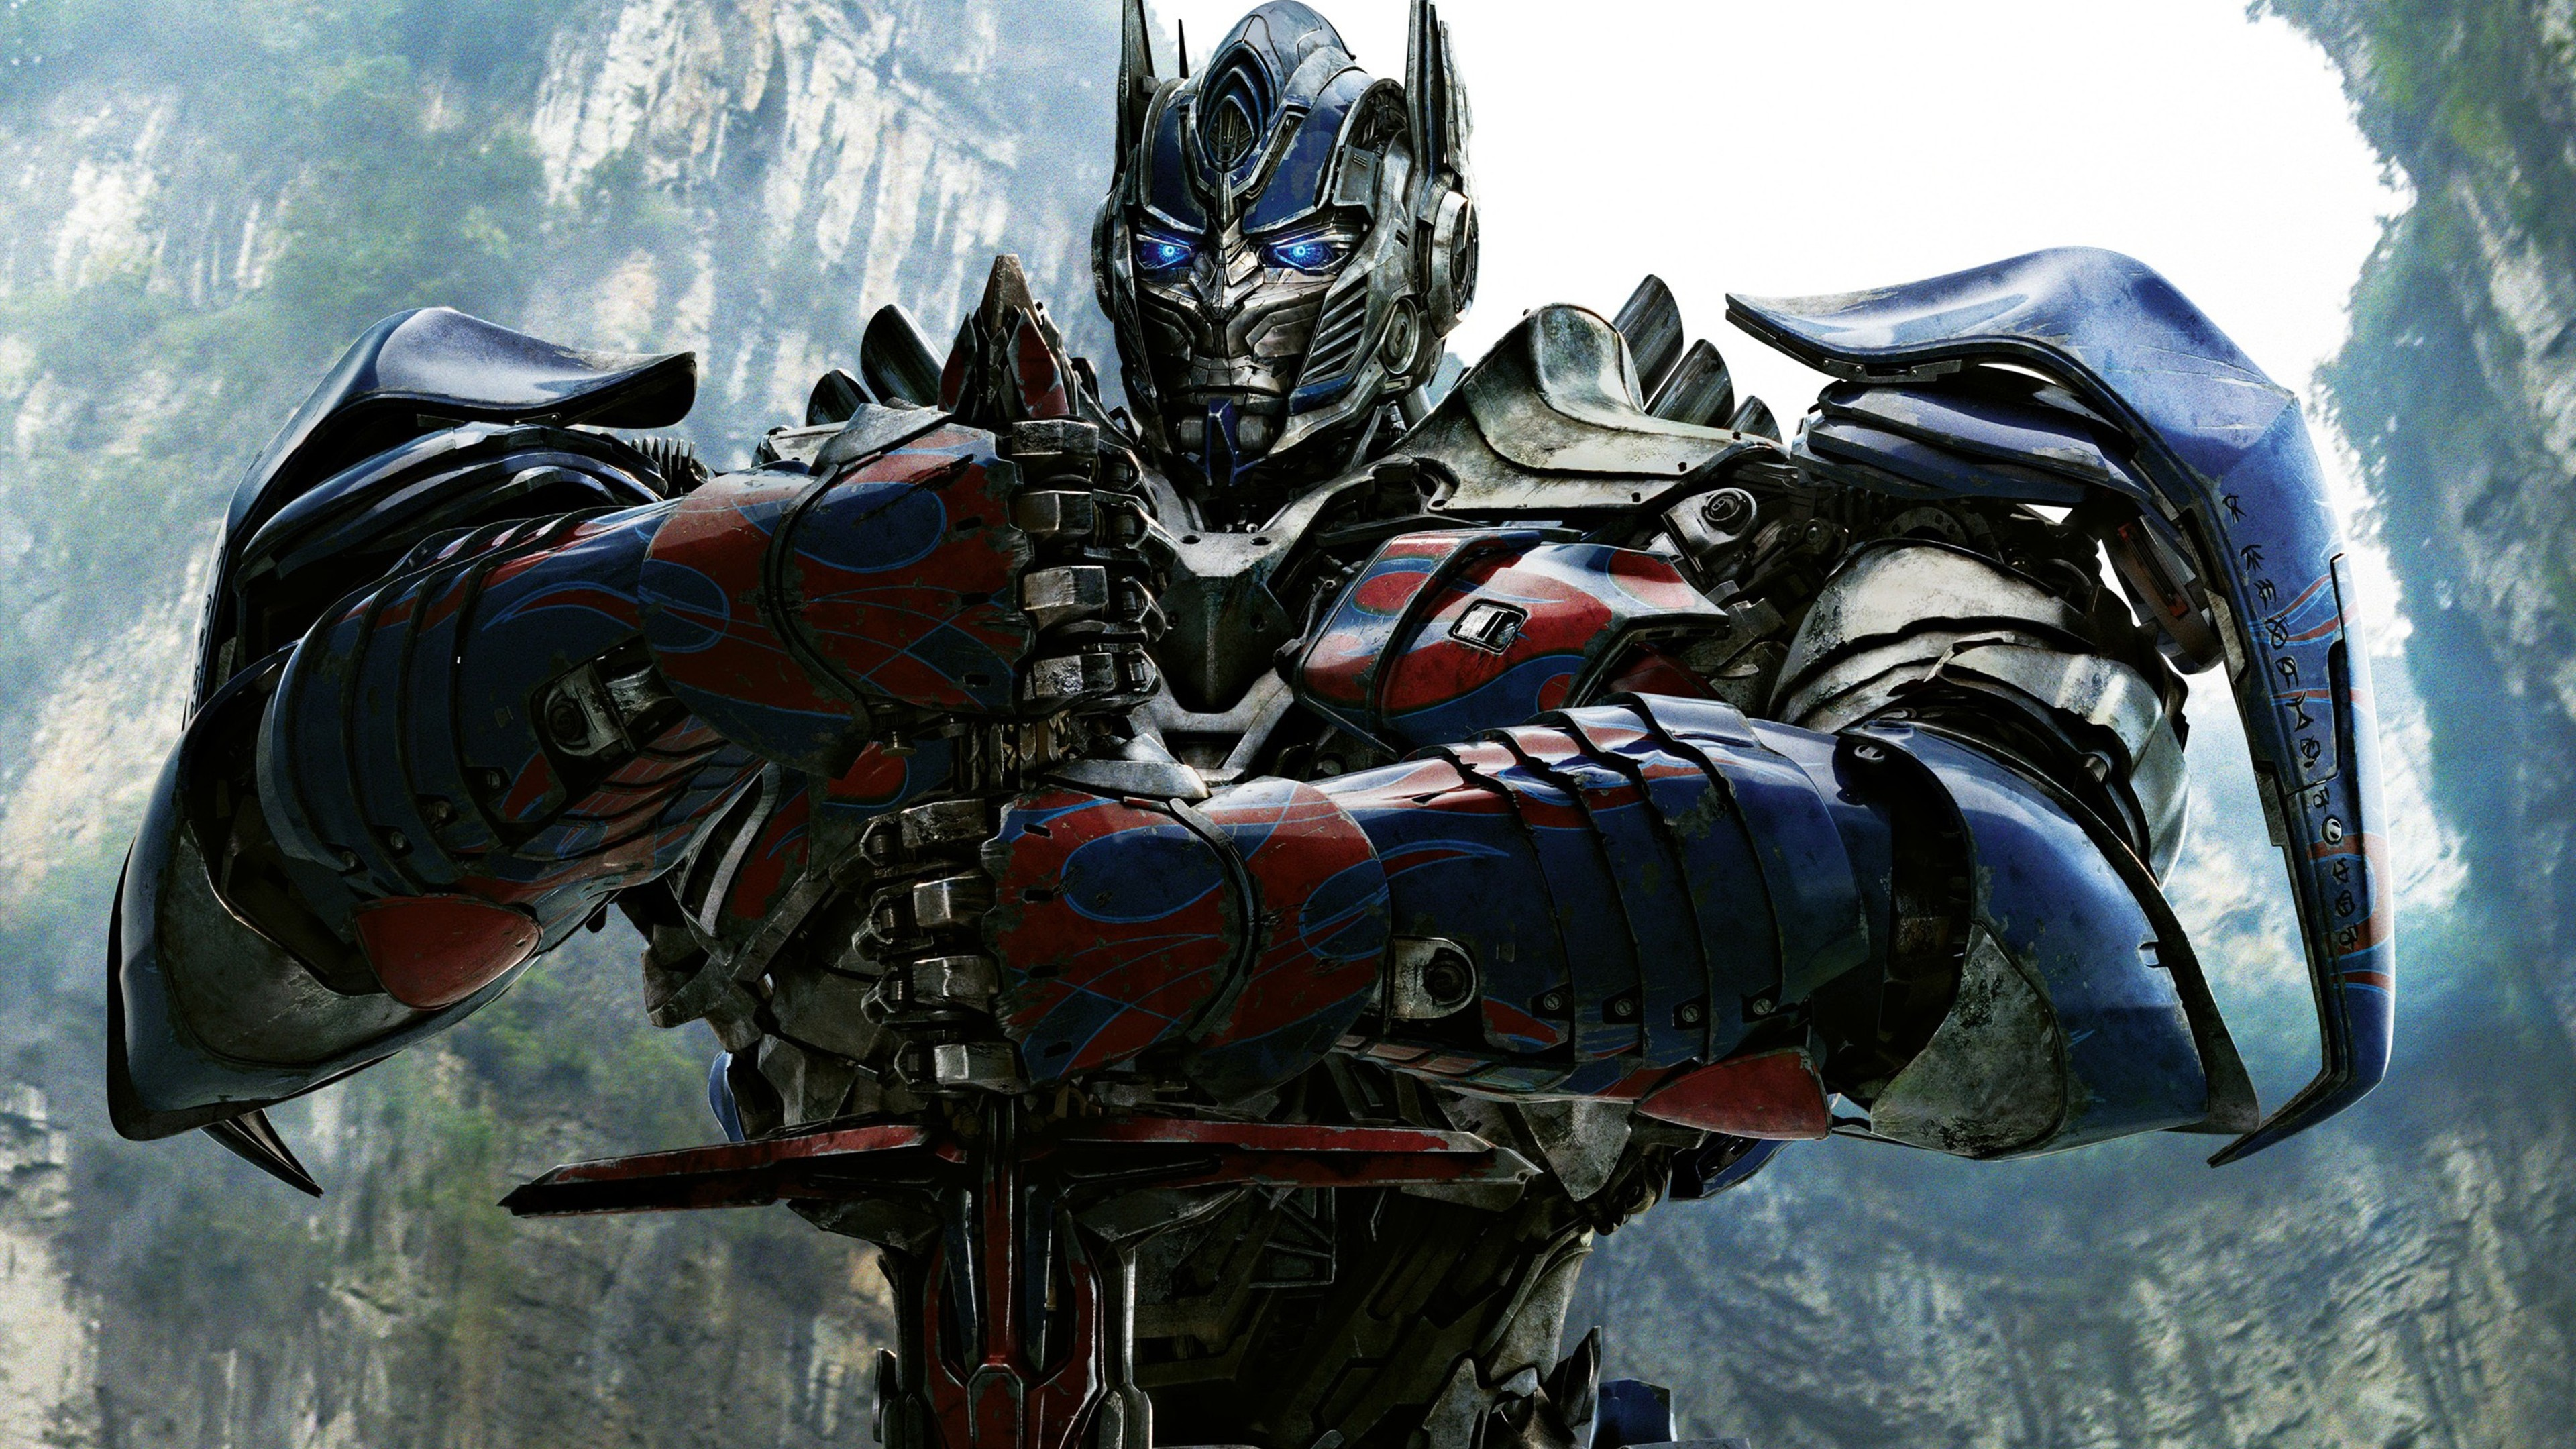 optimus prime in transformers 4, hd movies, 4k wallpapers, images